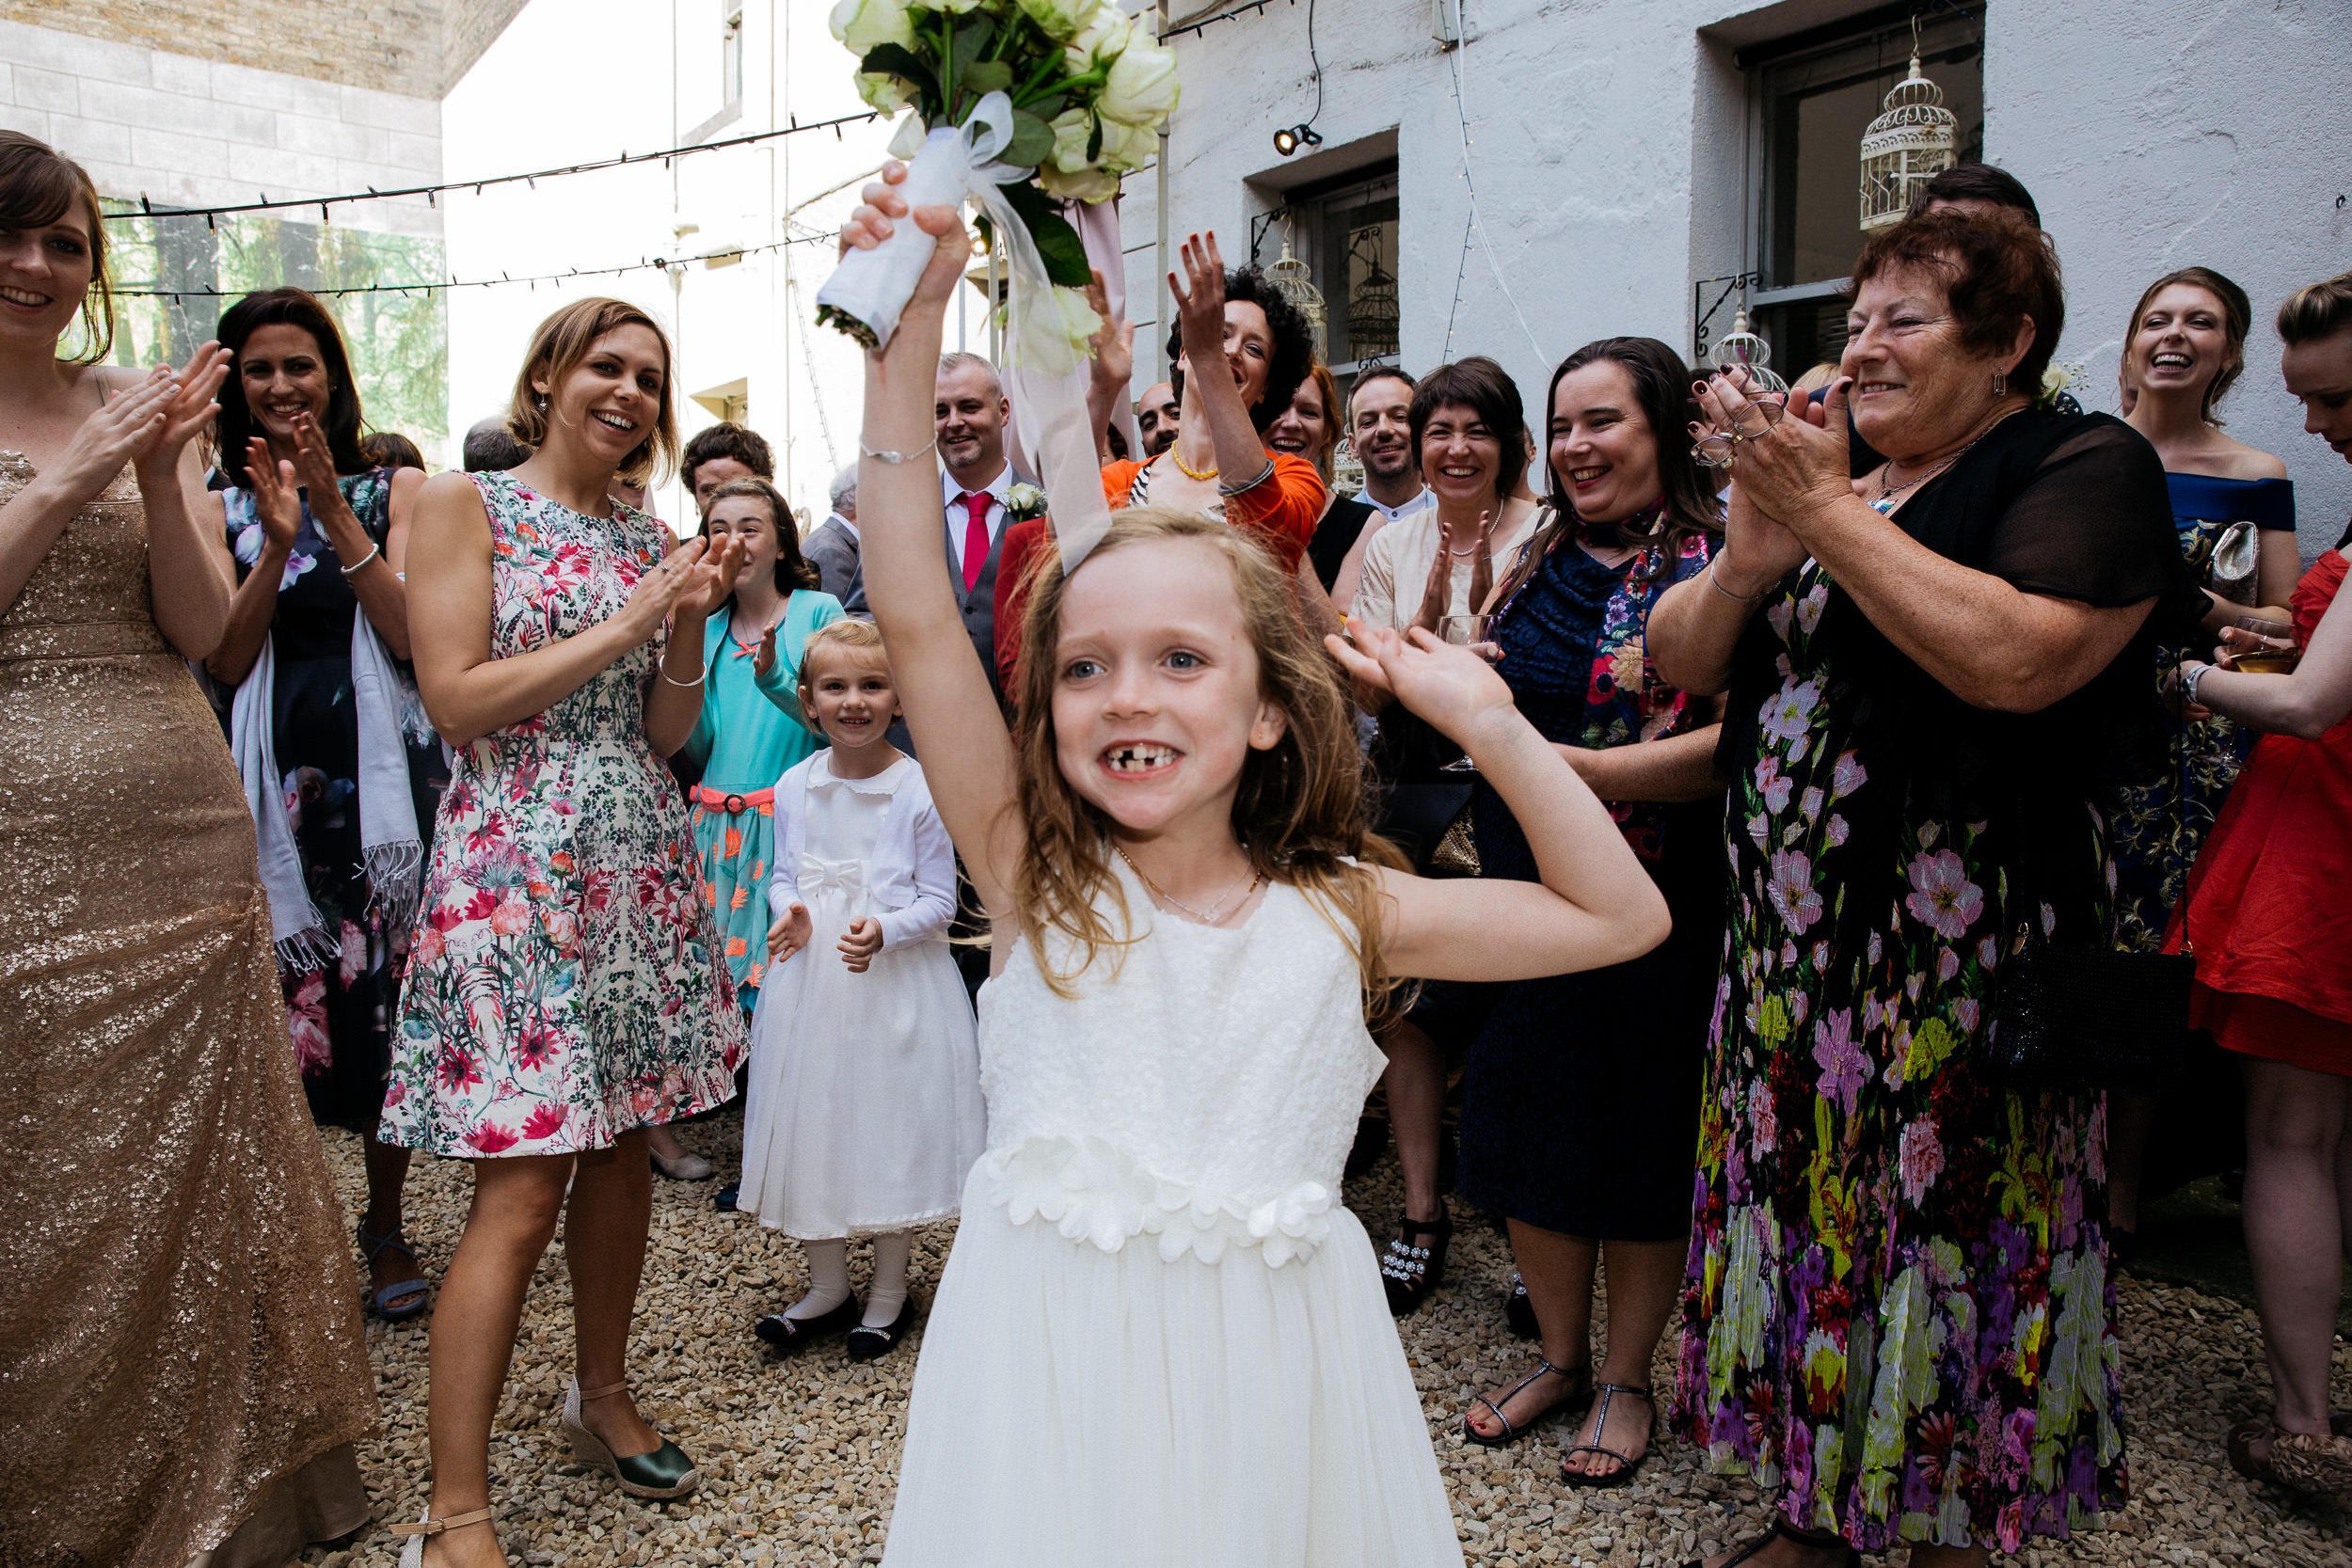 clairebyrnephotography-fun-wedding-photographer-ireland-creative-280.jpg